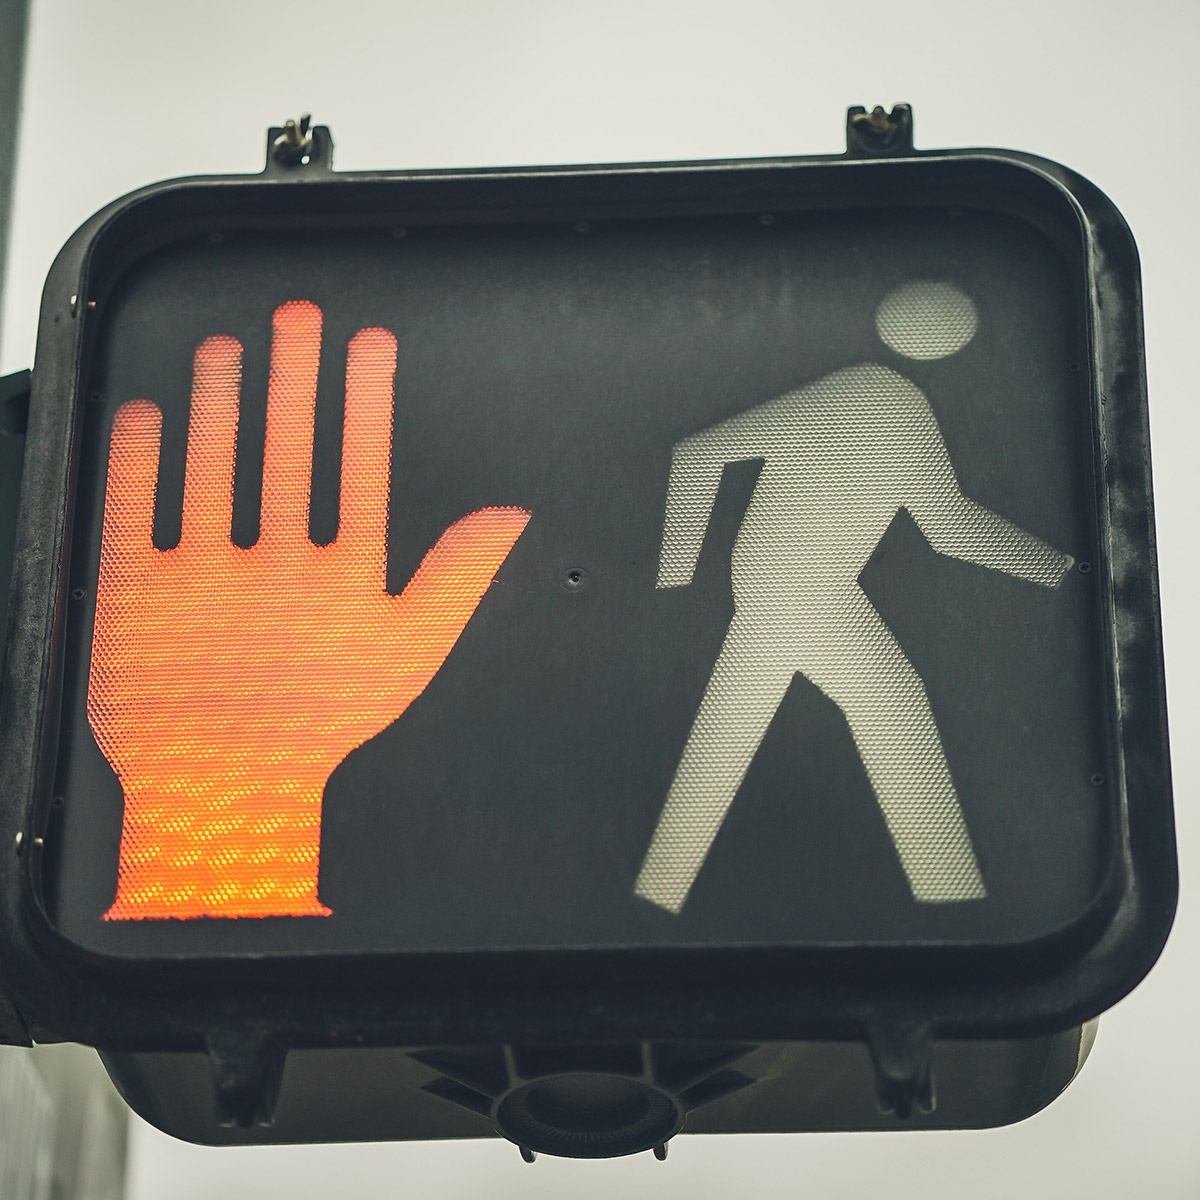 Stop walk traffic light sign with orange stop hand illuminated.